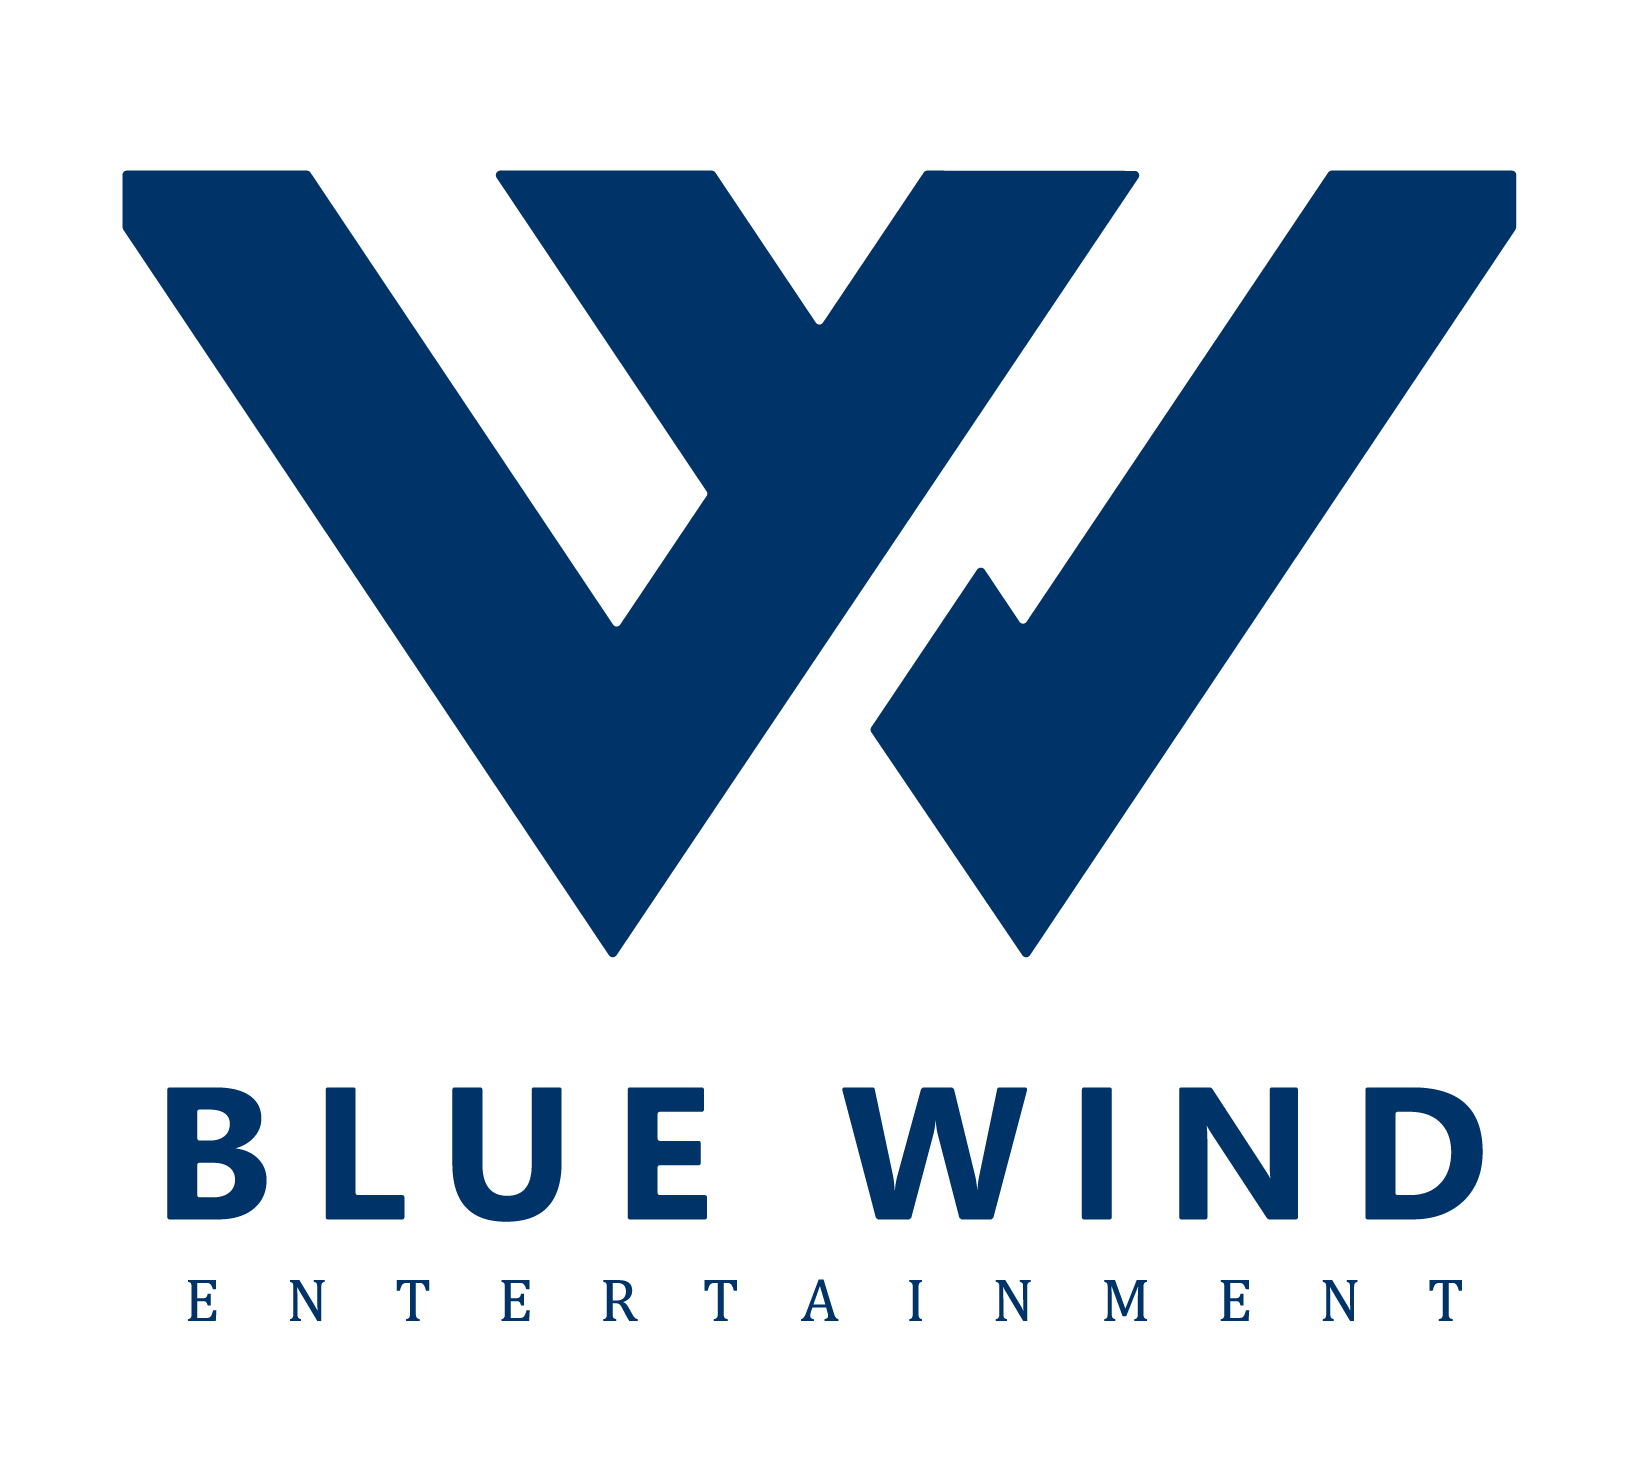 Blue Wind Entertaiment